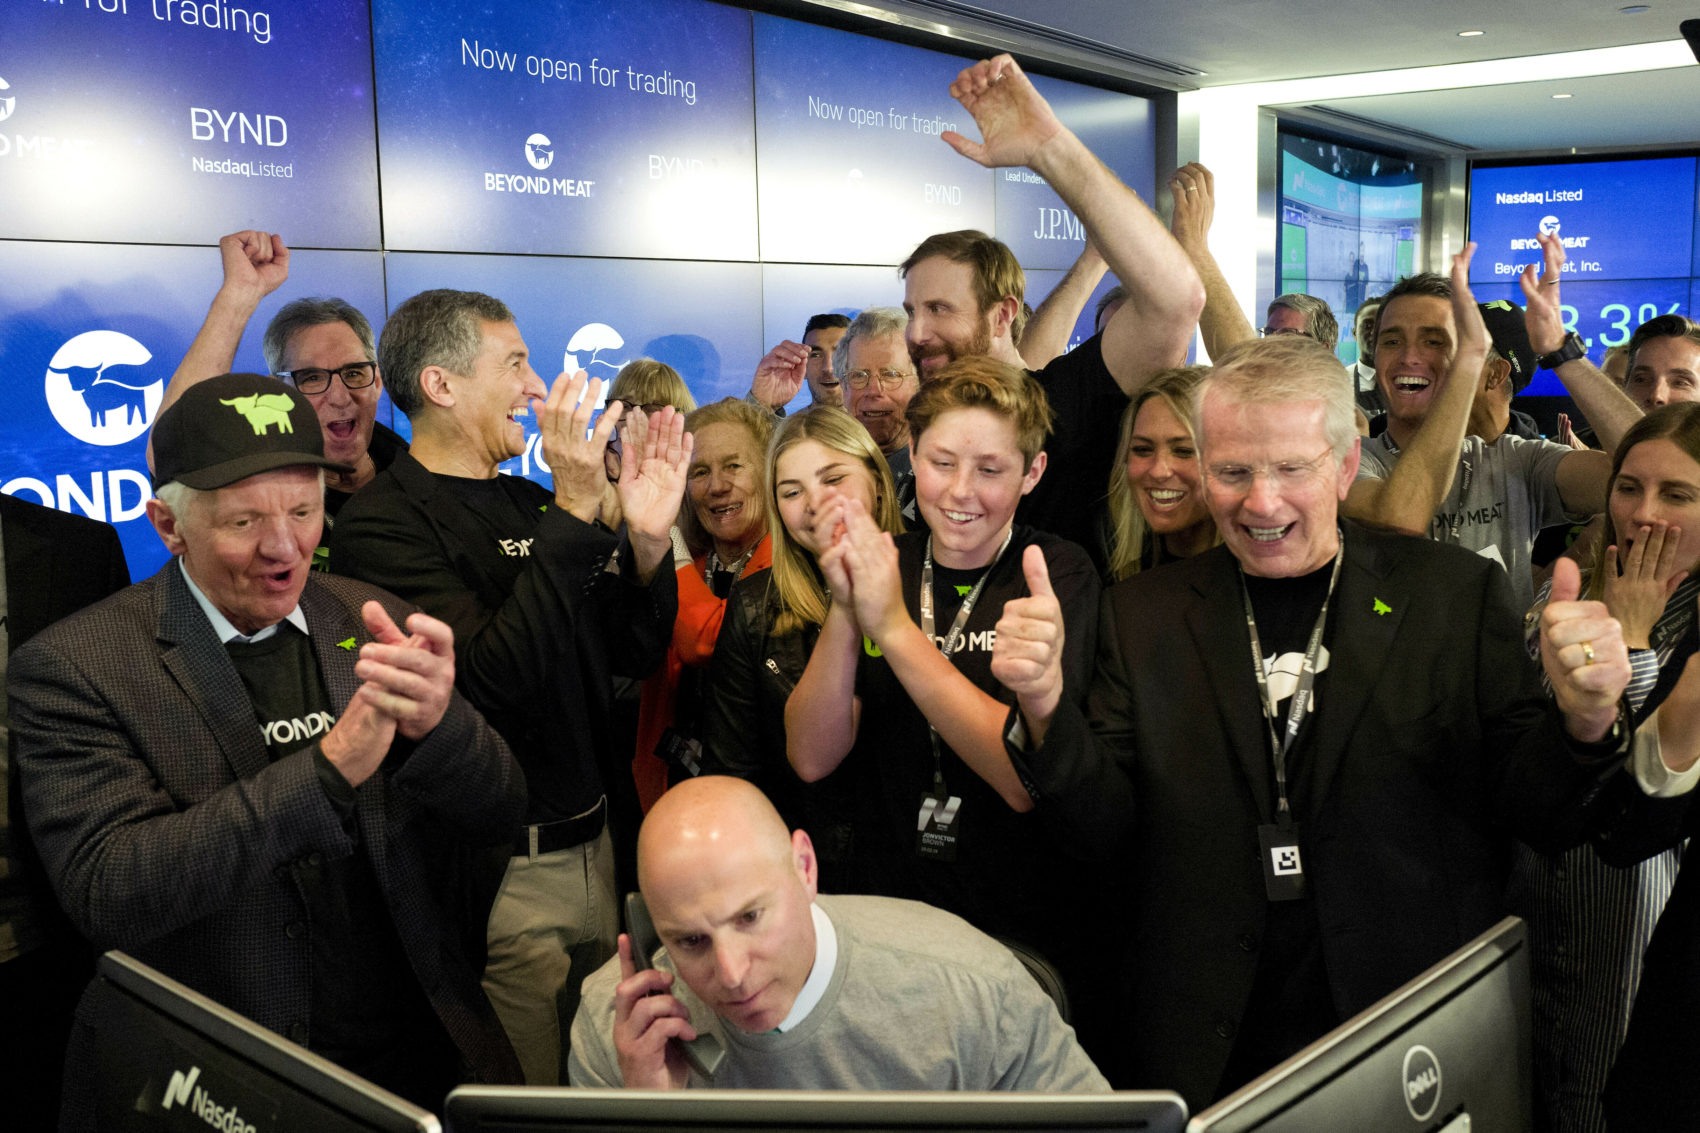 Ethan Brown, center background, CEO of Beyond Meat, raises his hand after his company's stock begins to trade, following its IPO at Nasdaq on May 2. California-based Beyond Meat makes burgers and sausages out of pea protein and other ingredients. (Mark Lennihan/AP).